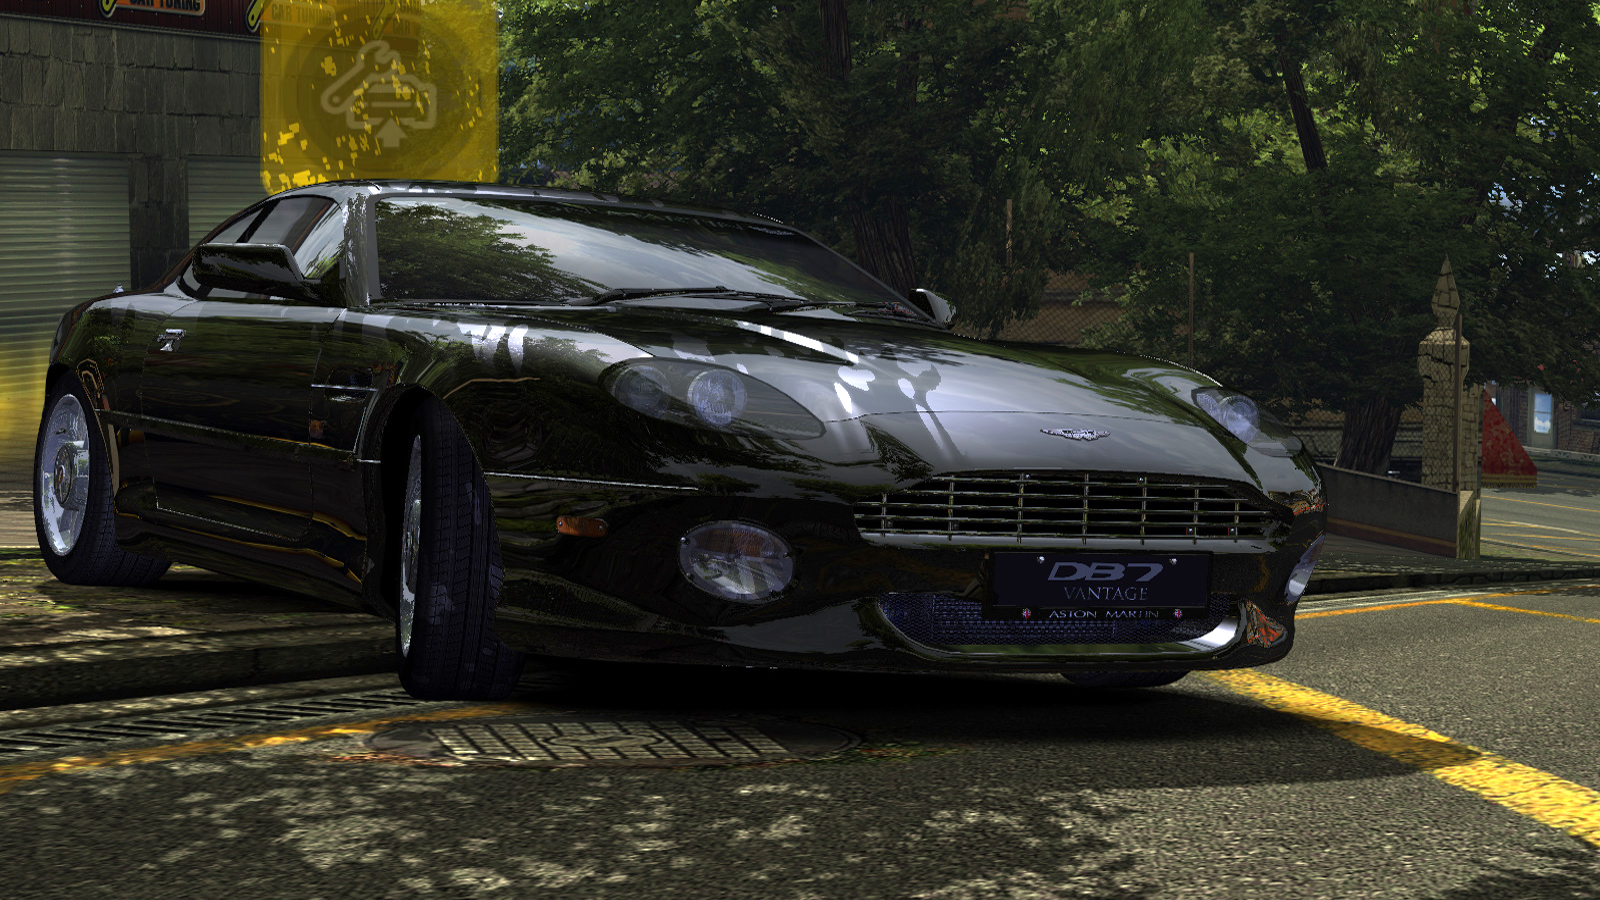 Speed 2020-01-12 19-43-36-541.jpg - Need for Speed: Most Wanted (2005) Aston Martin DB7 Vantage, Автомобиль